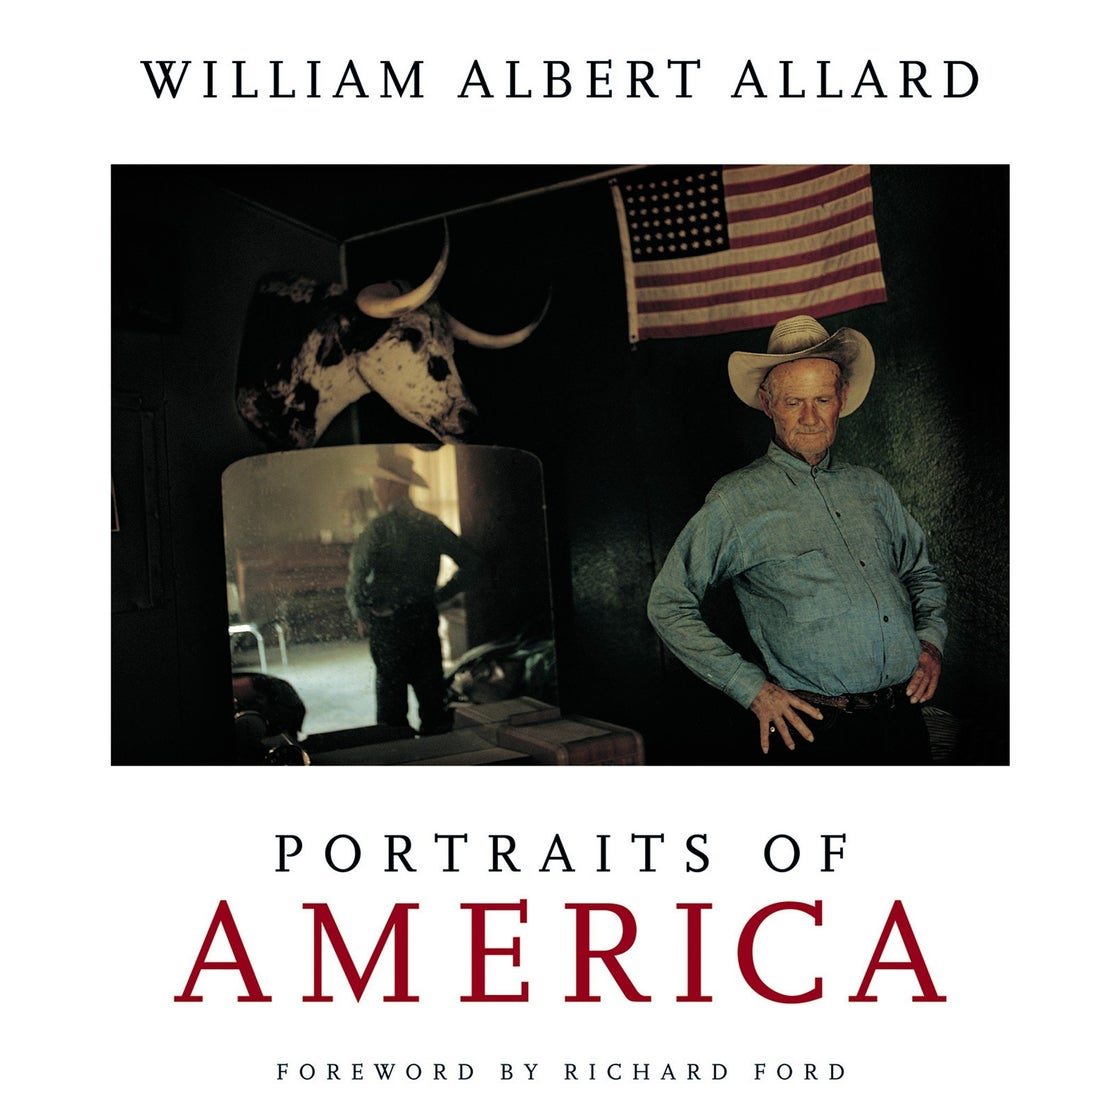 Image of Portraits of America